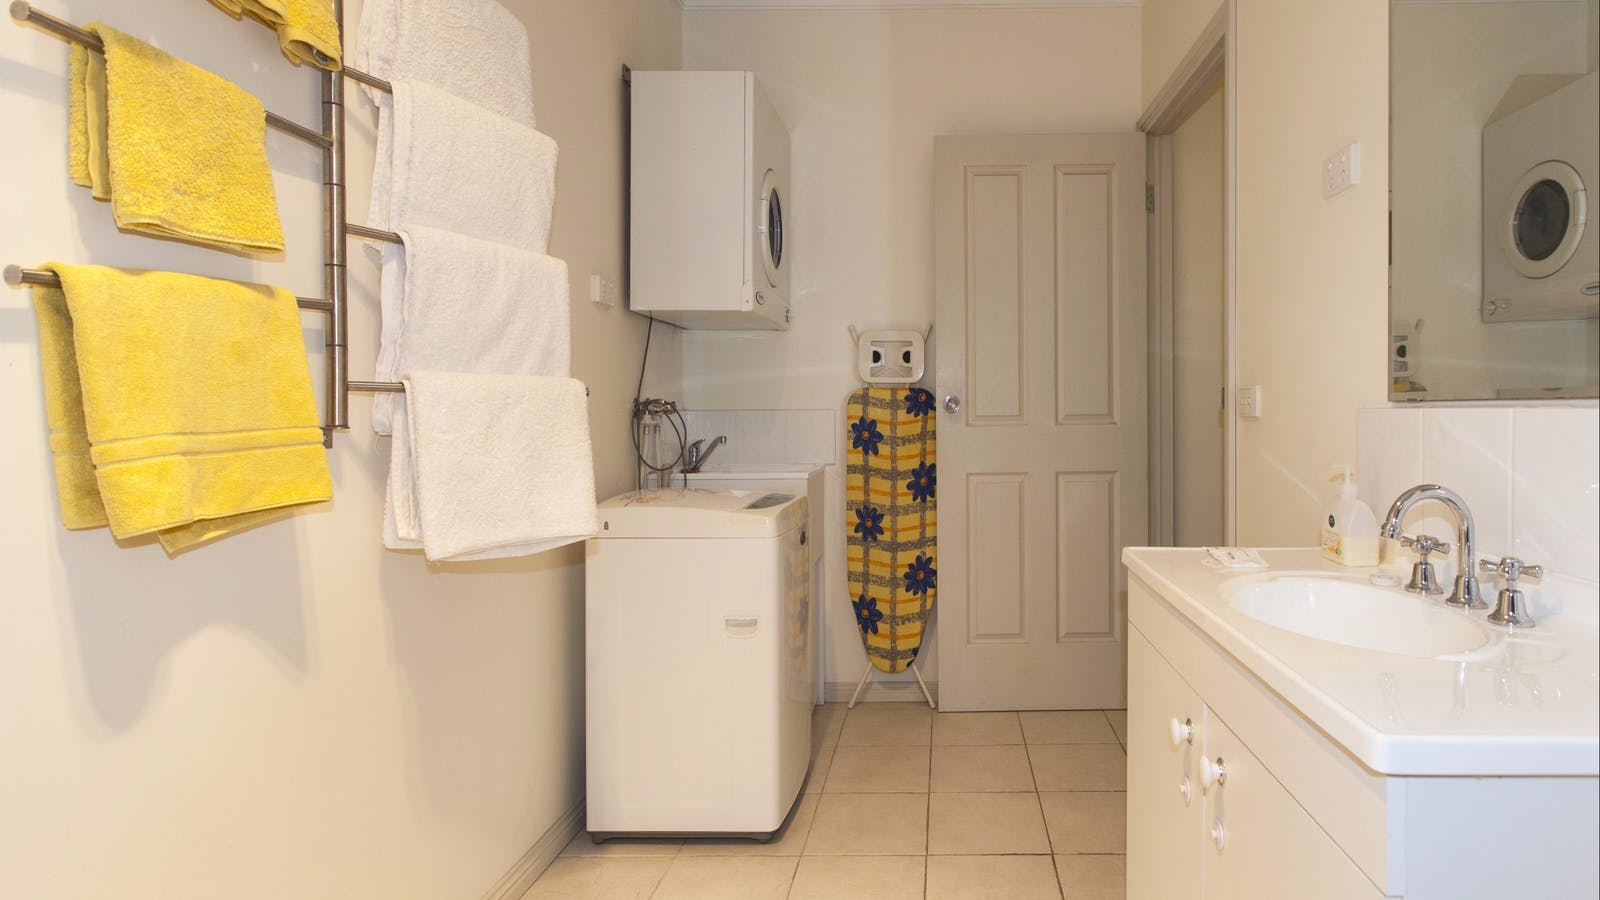 Laundry facilities in bathroom